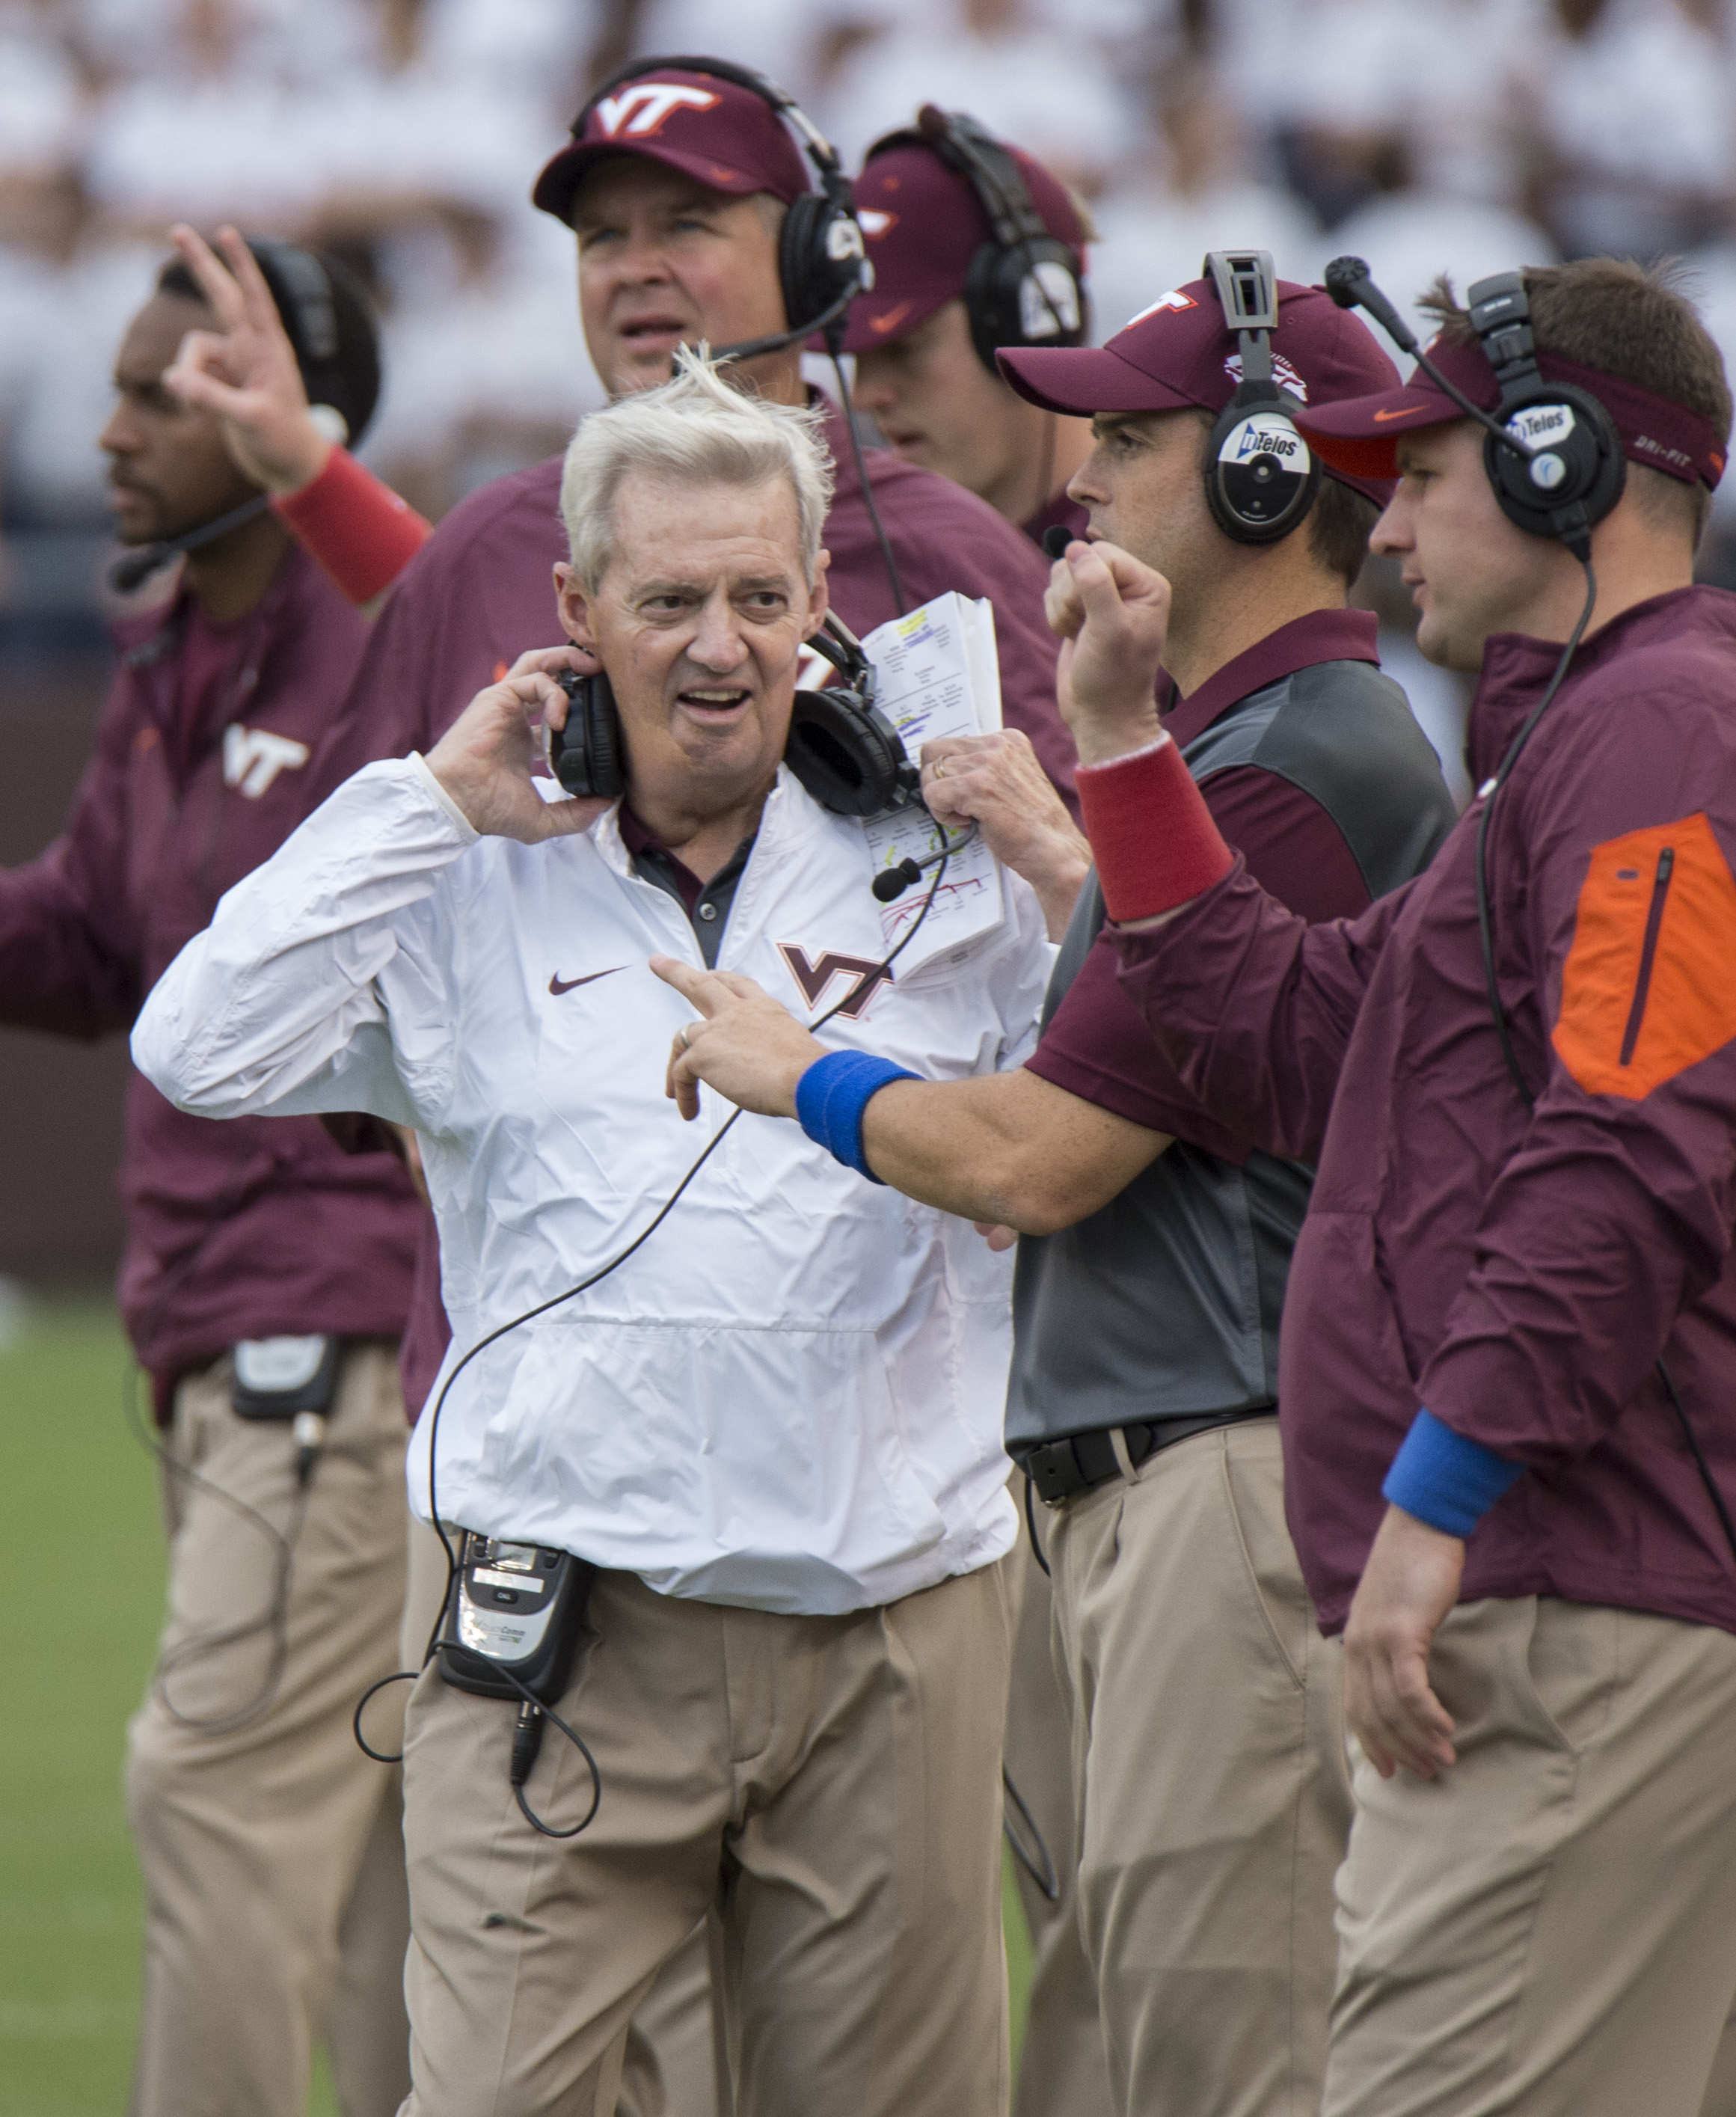 FILE - In this Sept. 12, 2015 file photo, Virginia Tech's head coach Frank Beamer, center, smiles with his coaches during an NCAA college football game against Furman, at Lane Stadium in Blacksburg, Va. Beamer is Virginia Tech football. He has been head c